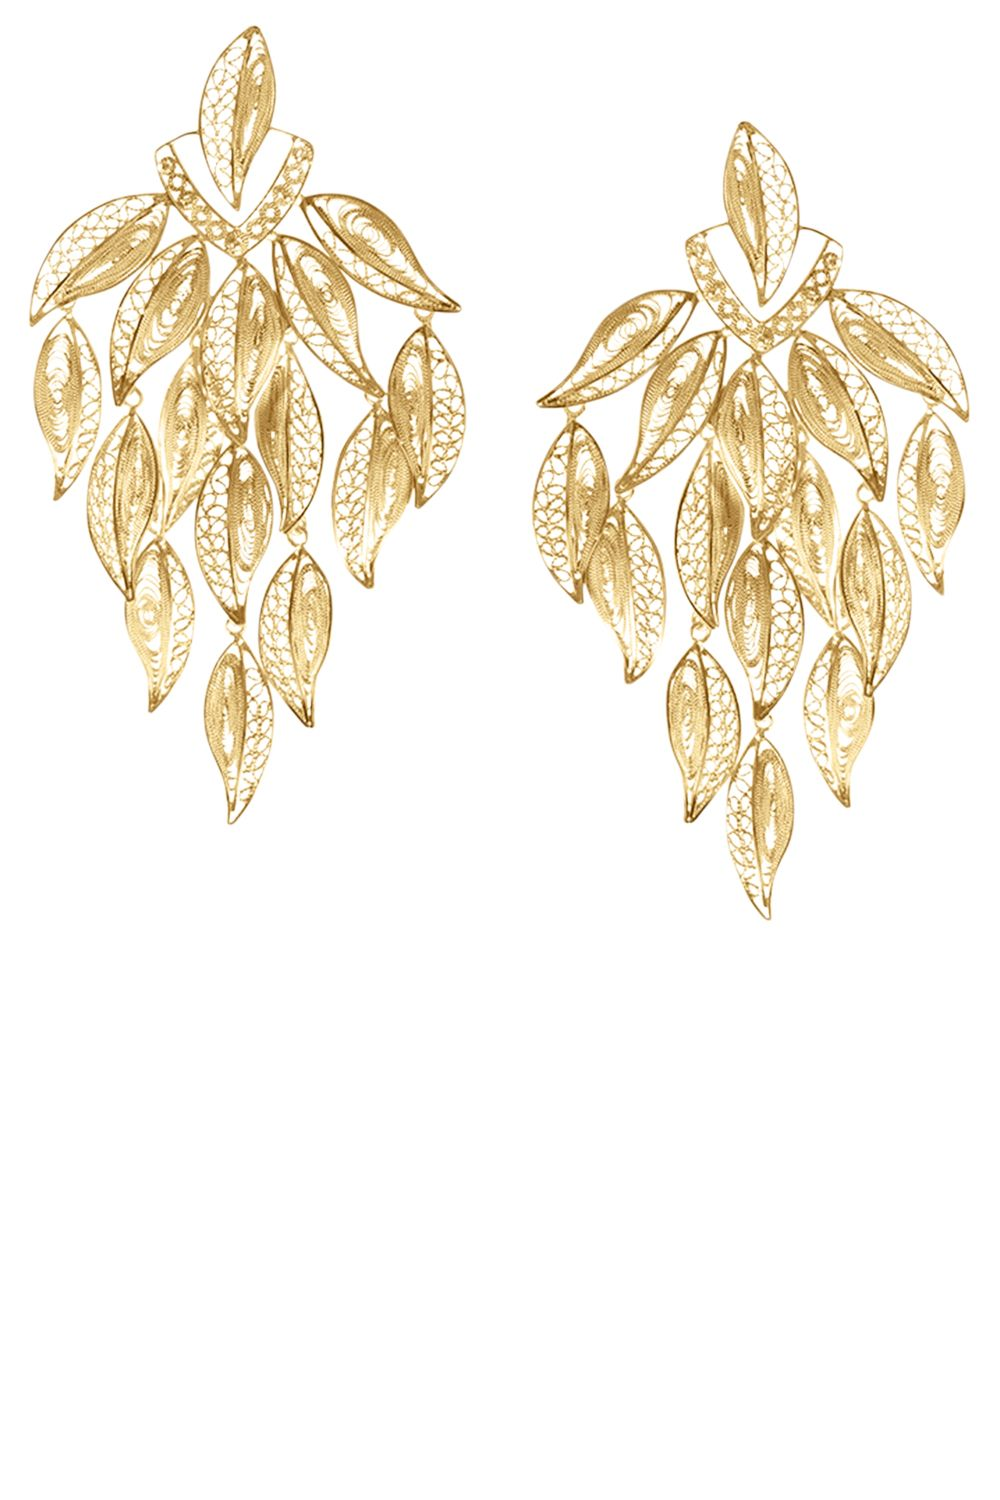 "<p><strong data-redactor-tag=""strong"" data-verified=""redactor"">Tres Almas at By Malka</strong> earrings, $315. <a href=""http://www.bymalka.com/"">bymalka.com</a>.<span class=""redactor-invisible-space"" data-verified=""redactor"" data-redactor-tag=""span"" data-redactor-class=""redactor-invisible-space""></span></p>"